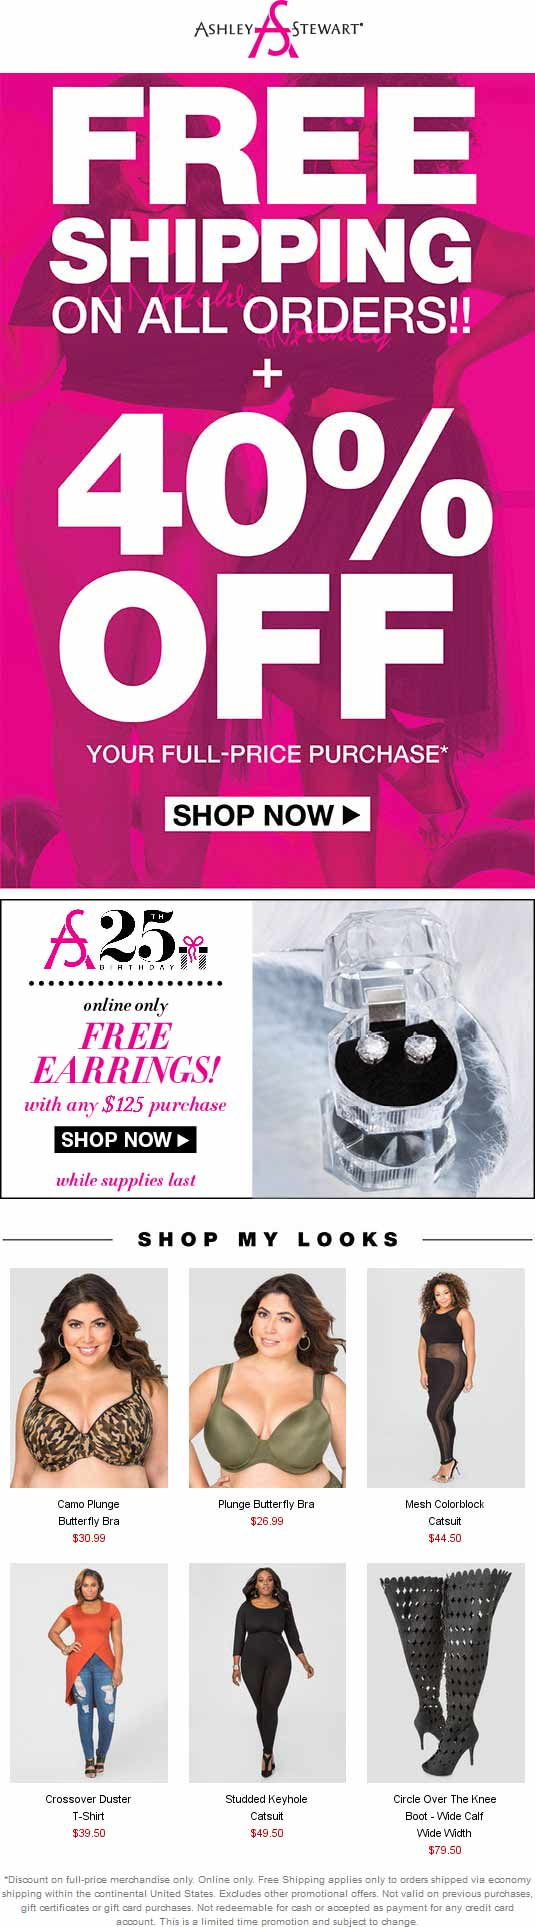 Ashley Stewart Coupon November 2017 40% off online at Ashley Stewart